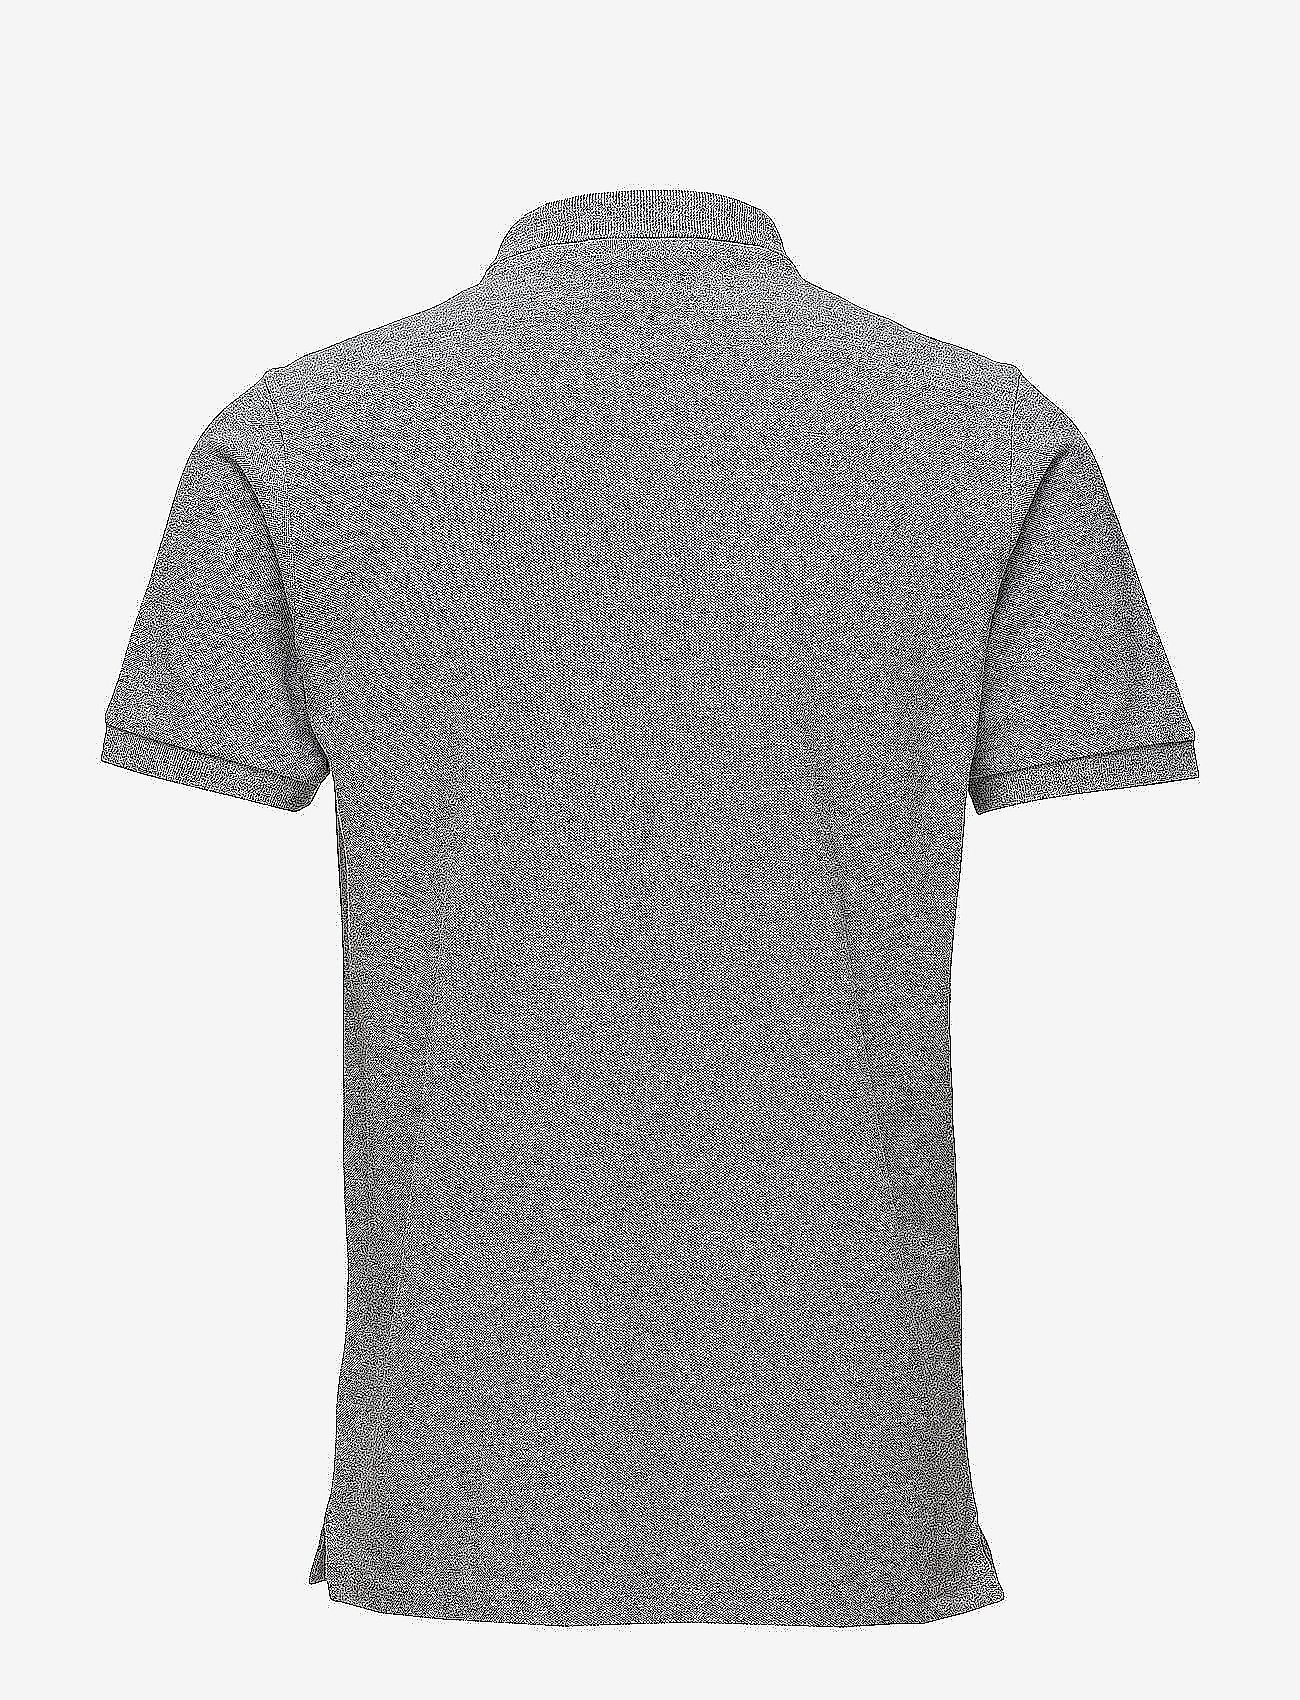 Knowledge Cotton Apparel - Pique Polo -  GOTS/Vegan - lyhythihaiset - grey melange - 1